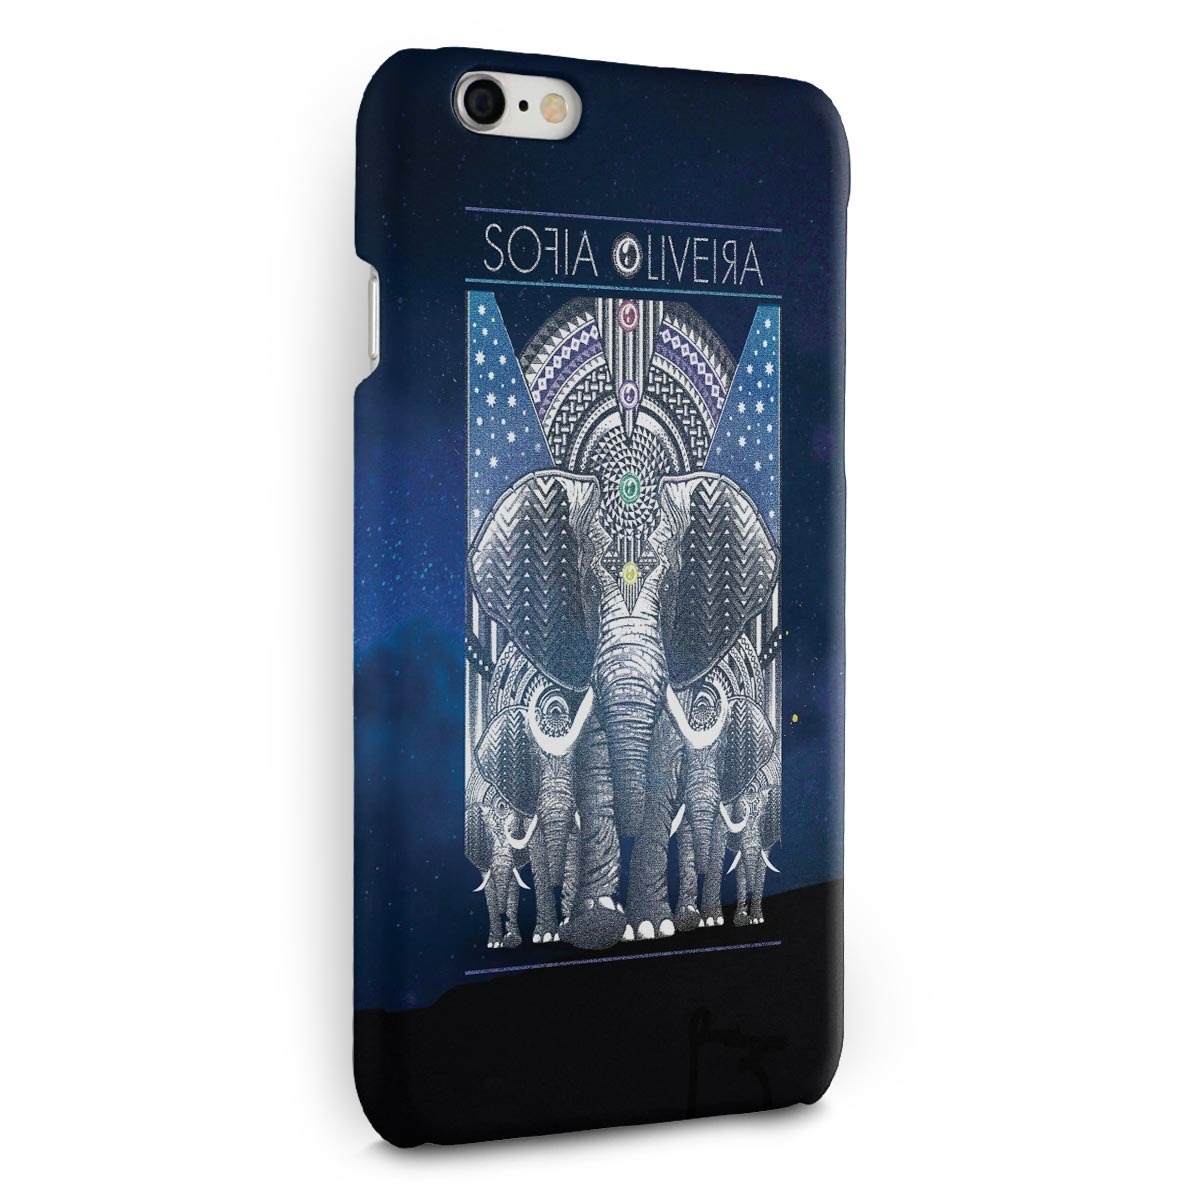 Capa para iPhone 6/6S Plus Sofia Oliveira Elephant